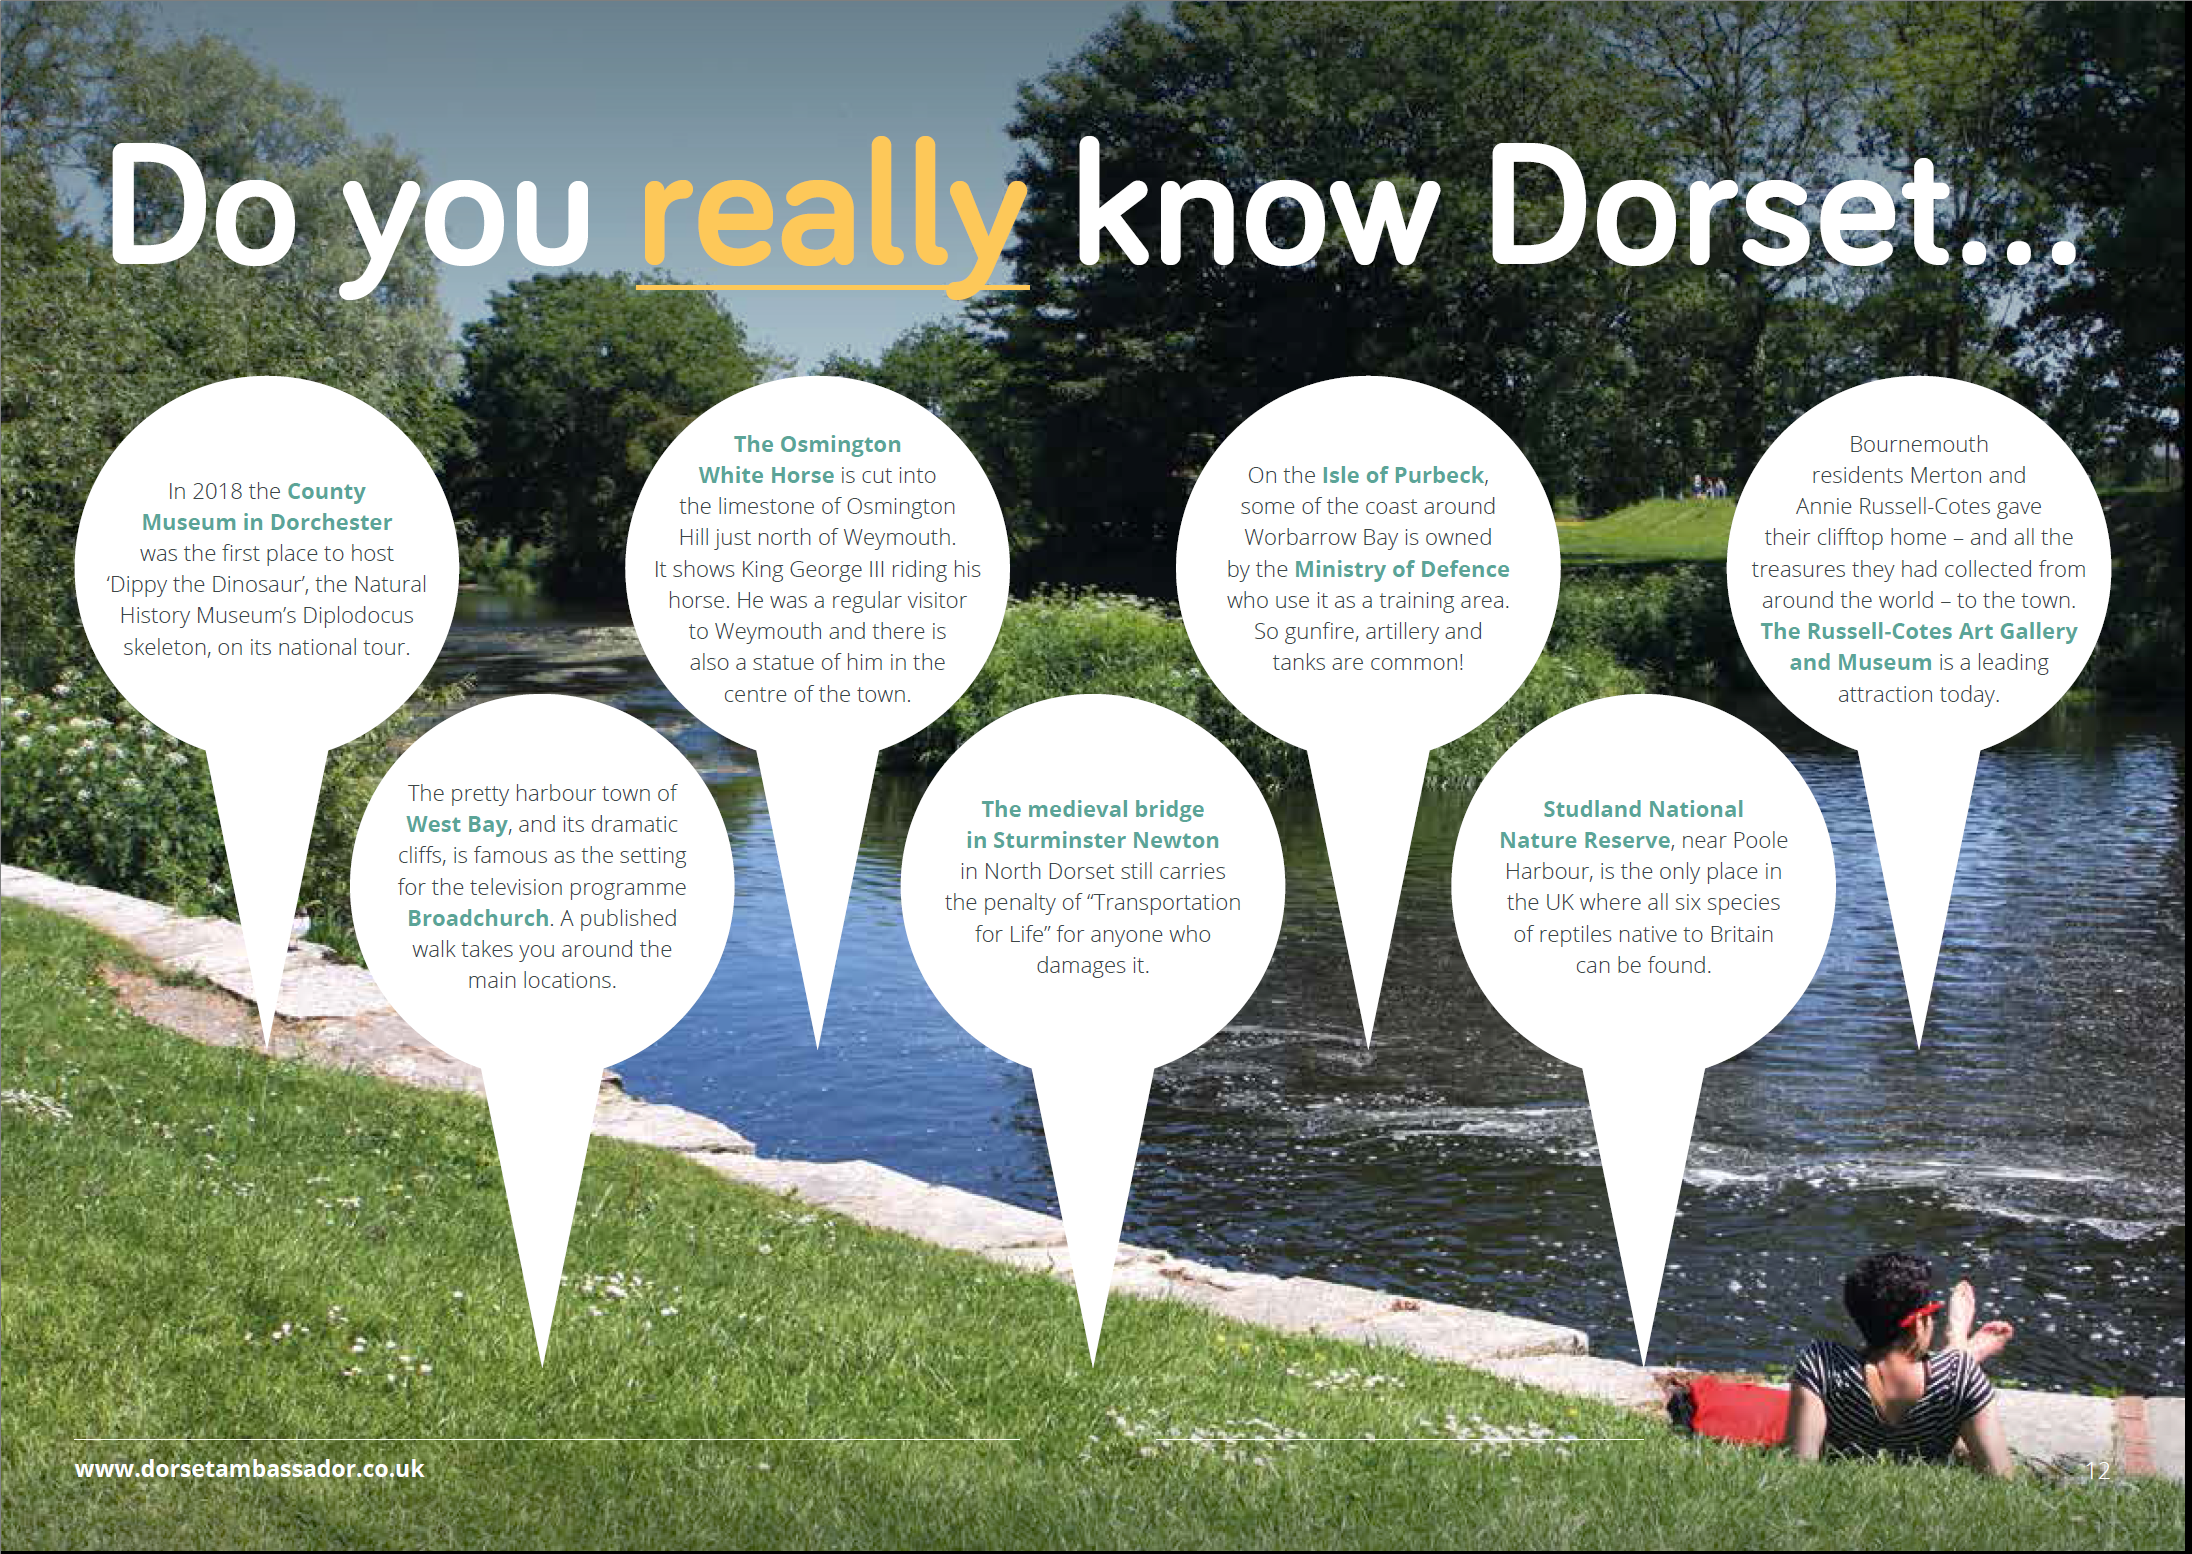 Dorset Ambassador - Do you really know Dorset